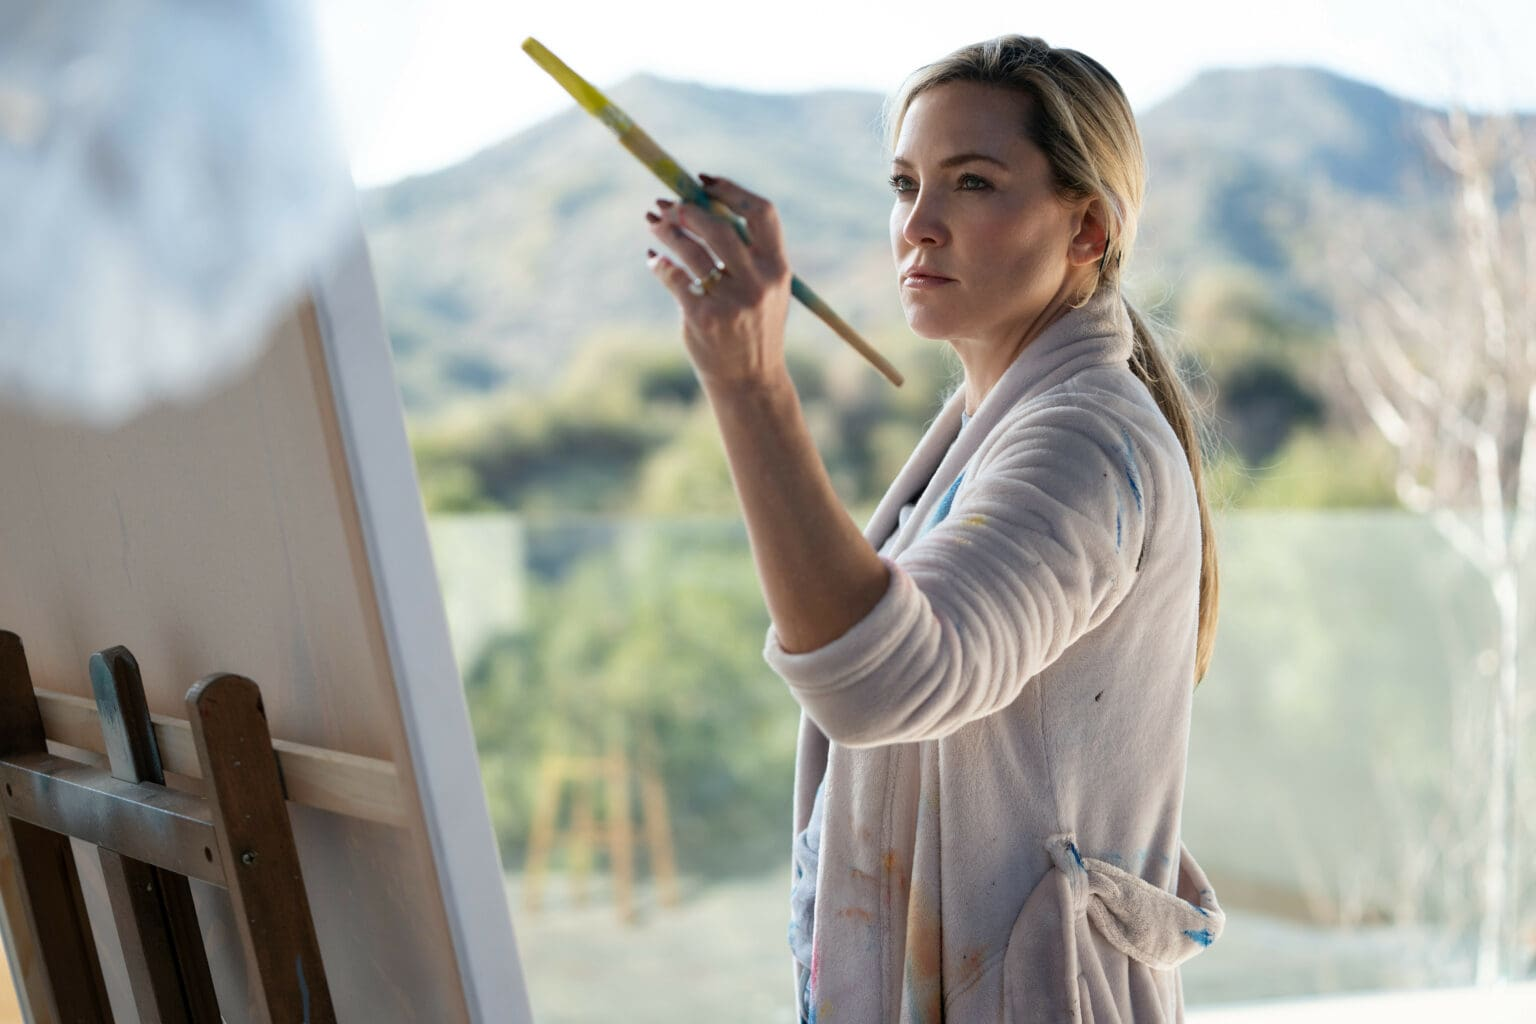 Truth Be Told review: Things get even more strained for Micah, played by Kate Hudson, in this week's episode.